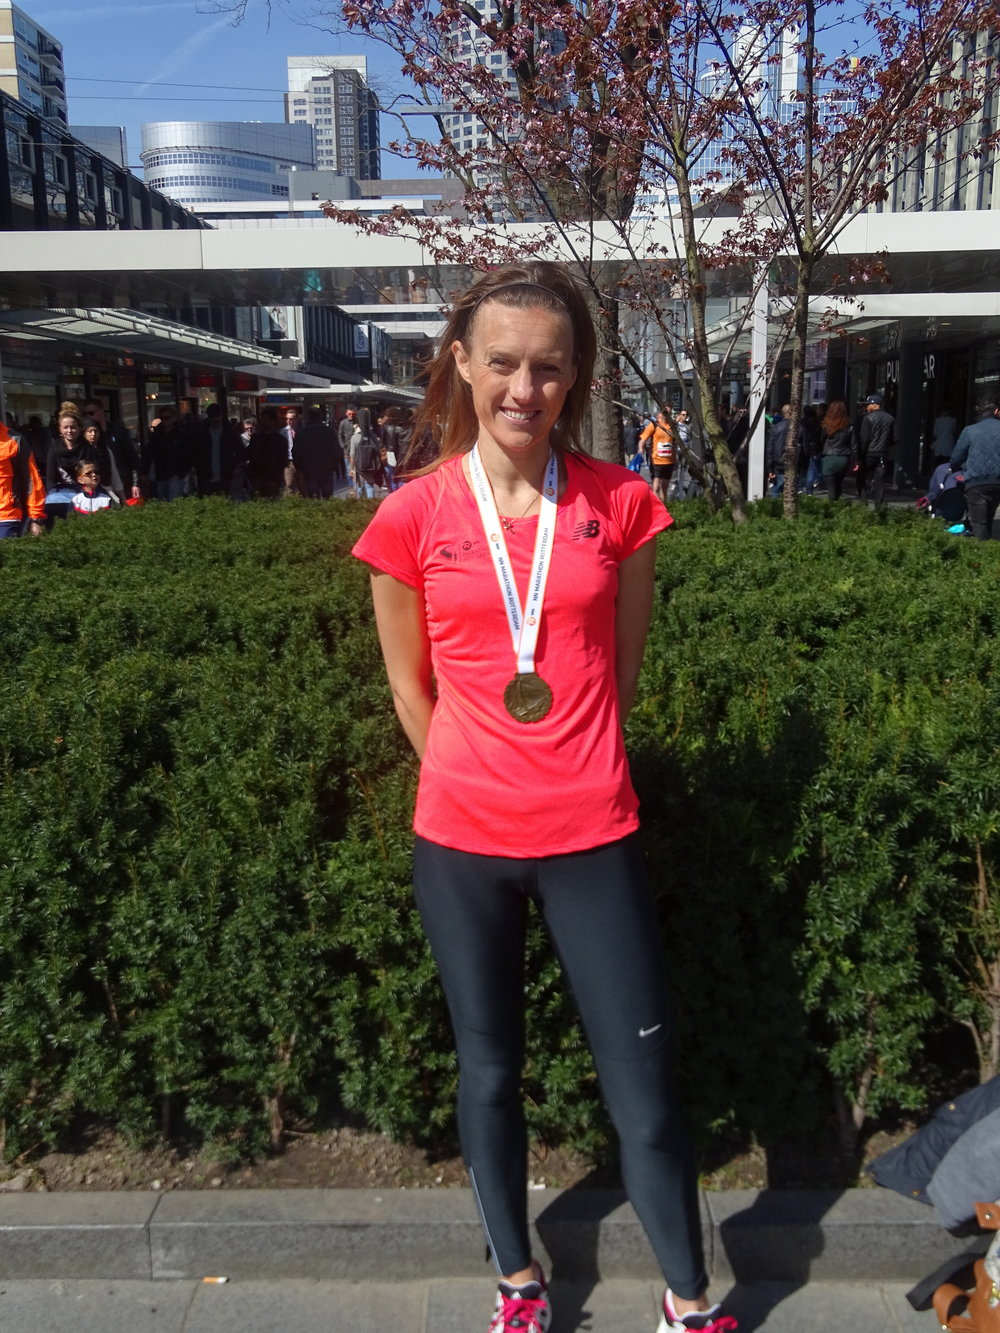 Vicky still smiling and looking fresh as ever after the Rotterdam Marathon